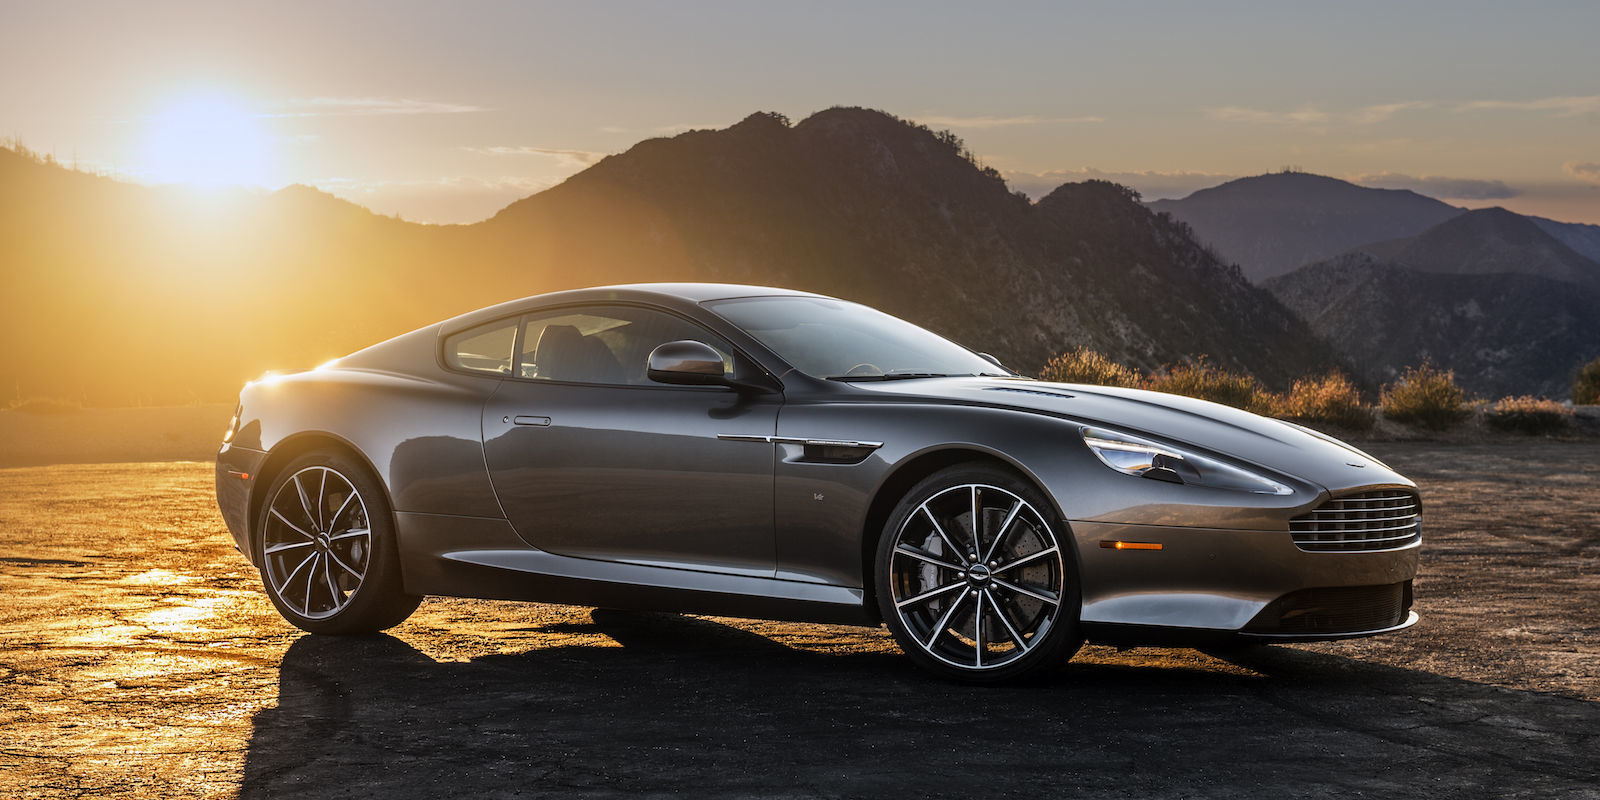 Aston Martin DB9, The Long-Lived Savior Of The Brand, Ends